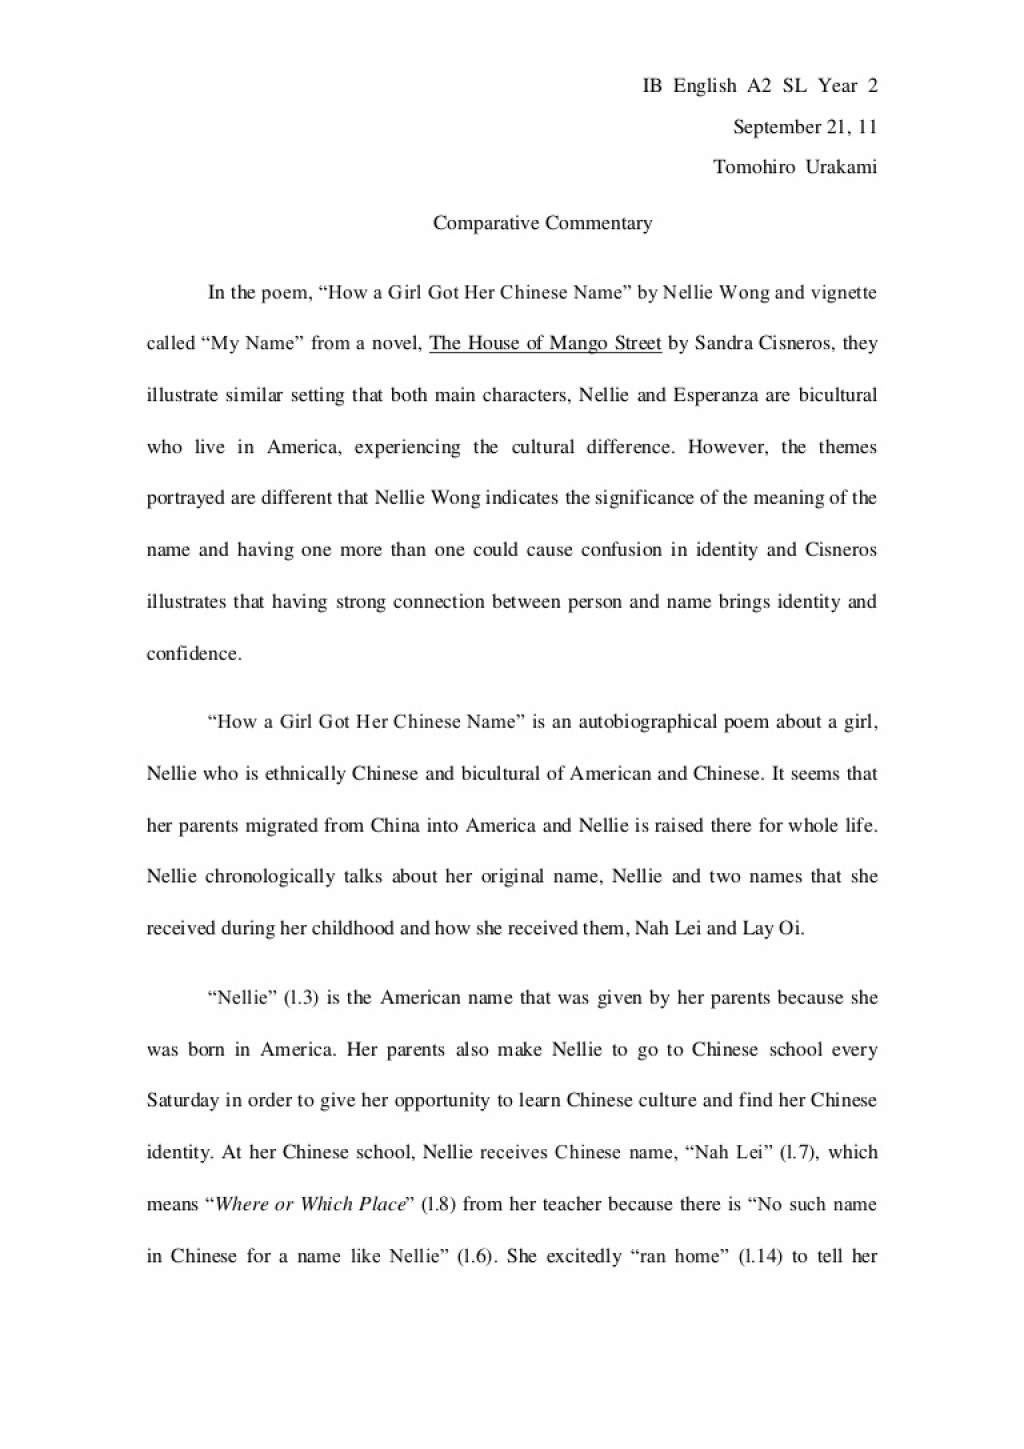 014 Essay Example Comparativeessaydraft Phpapp02 Thumbnail Black Lives Matter Impressive Thesis Large